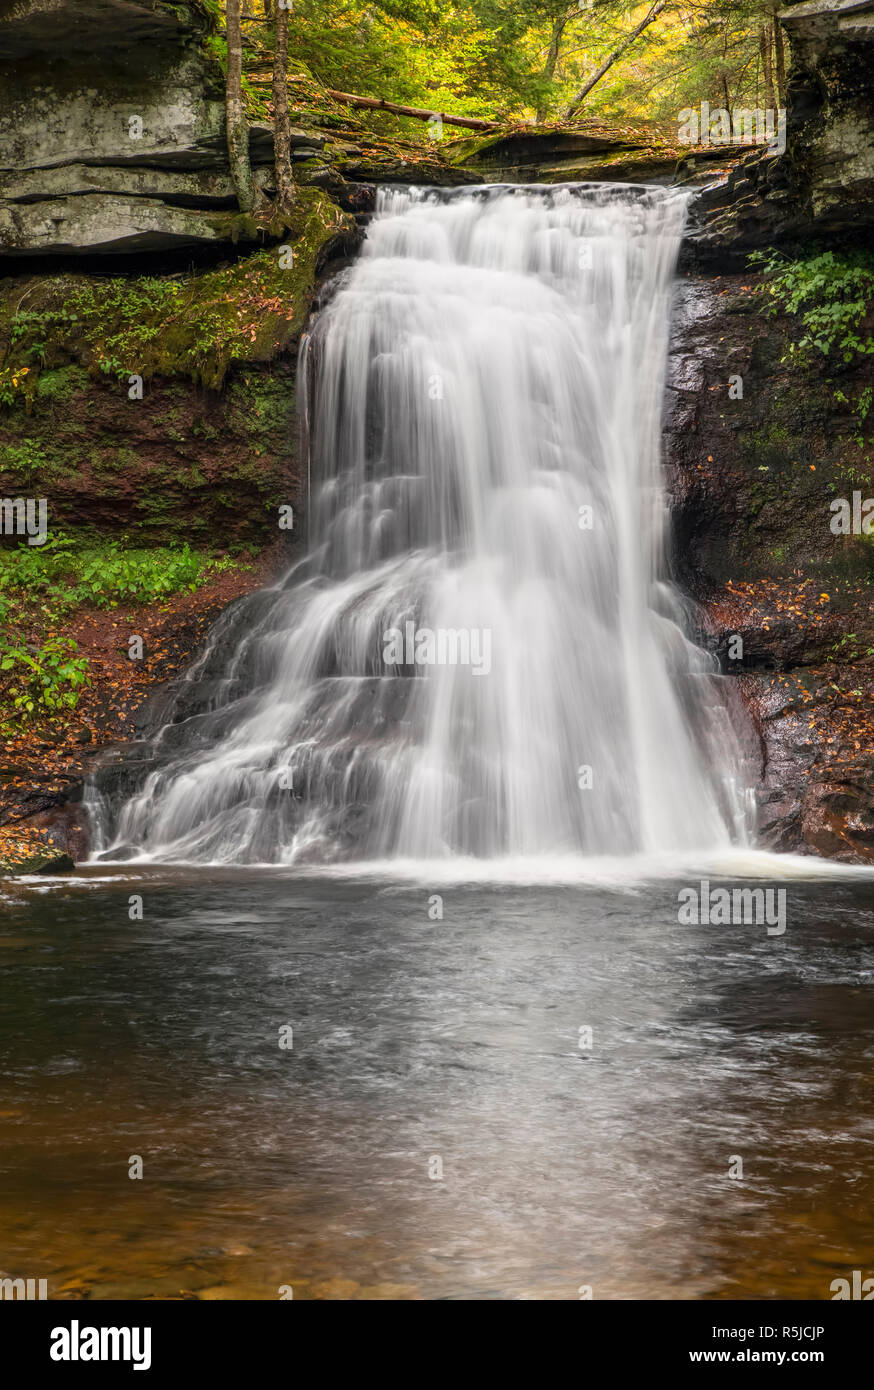 Sullivan Falls, a waterfall in northeastern Pennsylvania, plunges over a cliff surrounded by fall color. Stock Photo